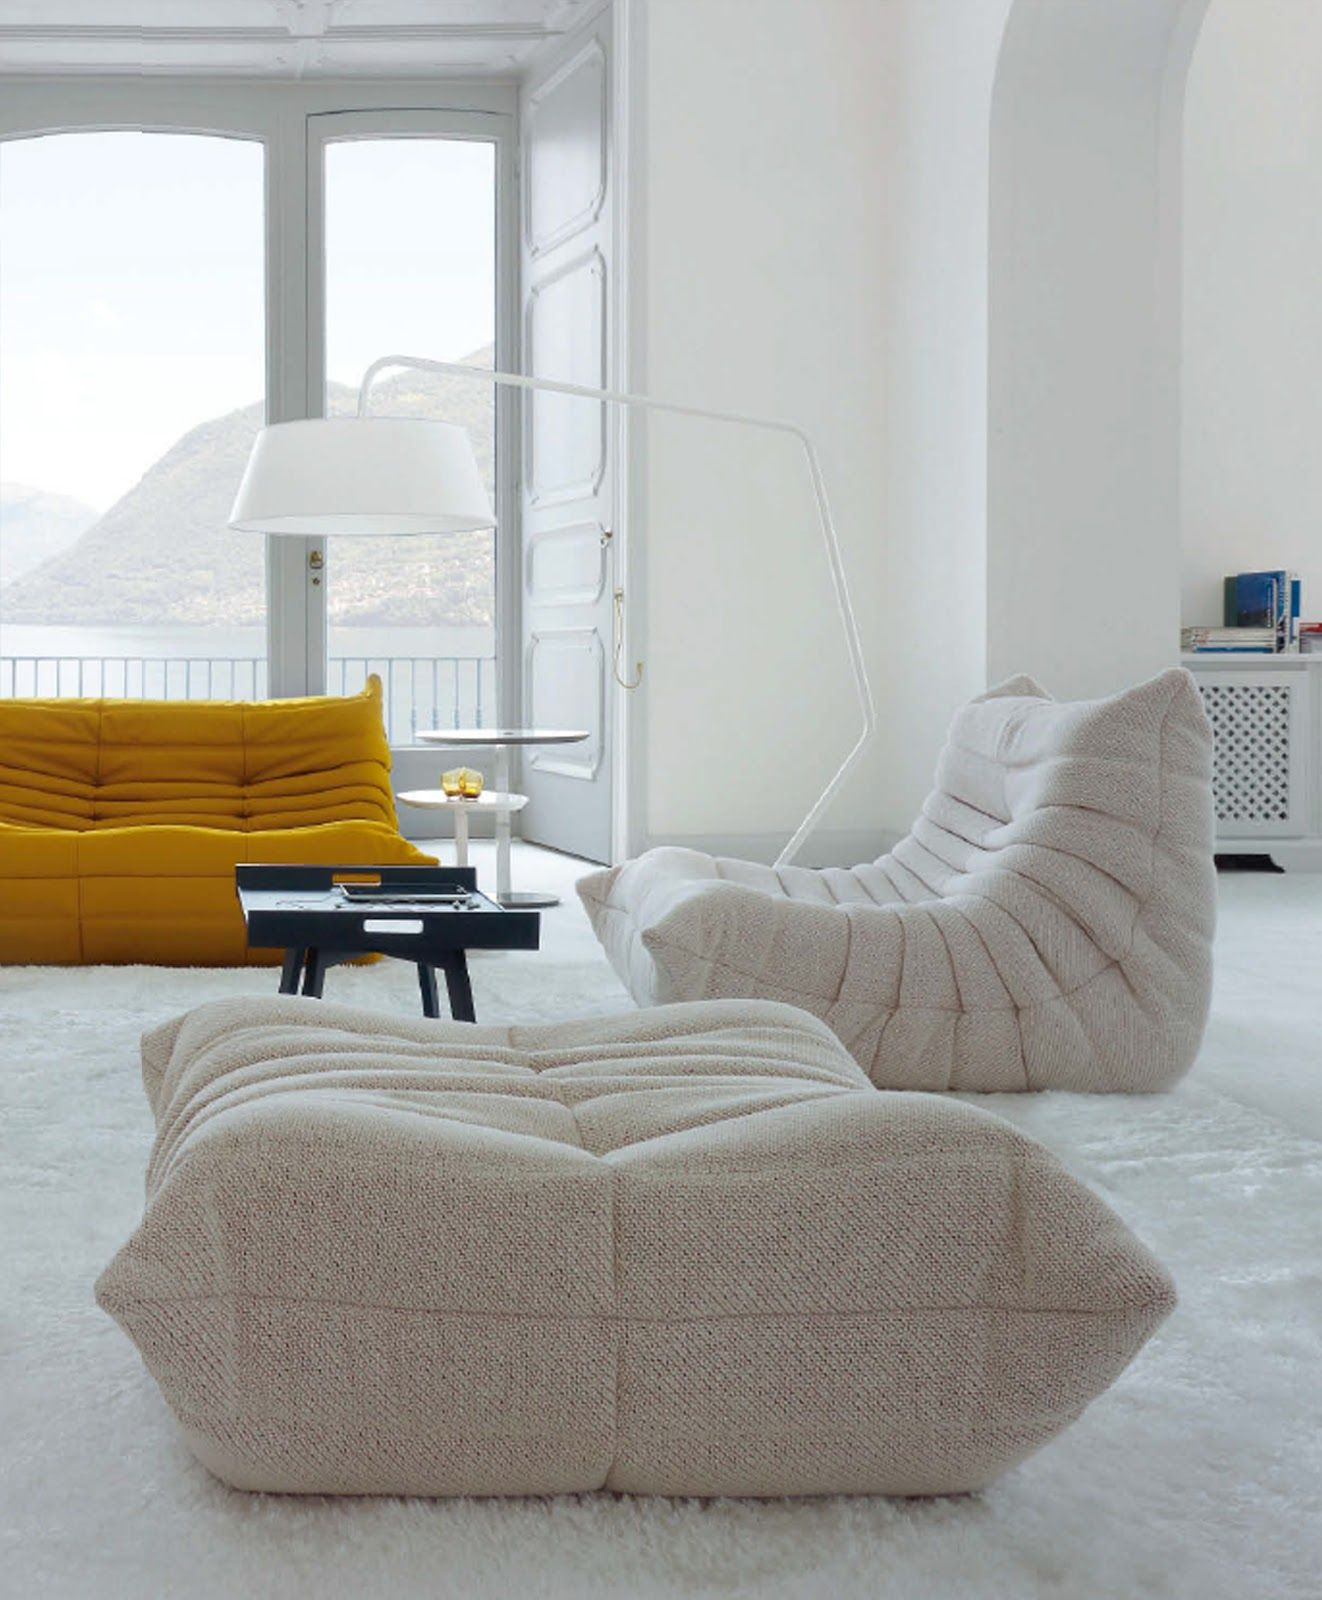 chair under cover white covers for folding chairs togo and ottoman by ligne roset i would love these